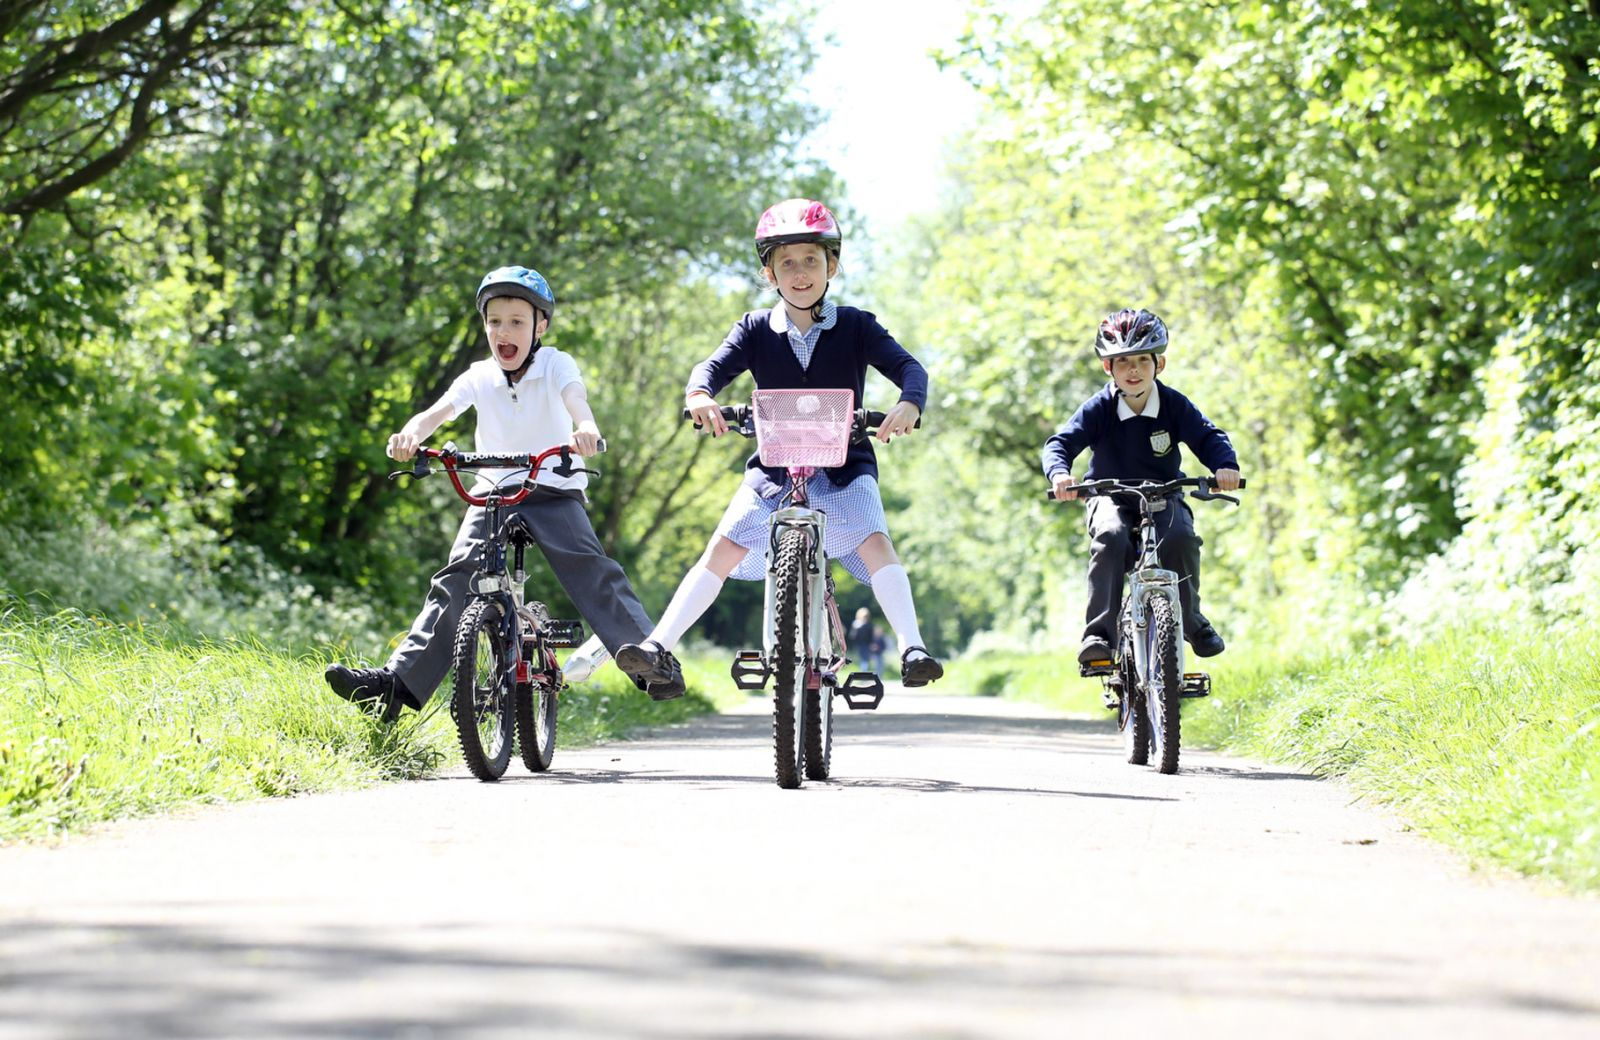 Saddle up for Bike to School Week 9-13 June | Primary Times